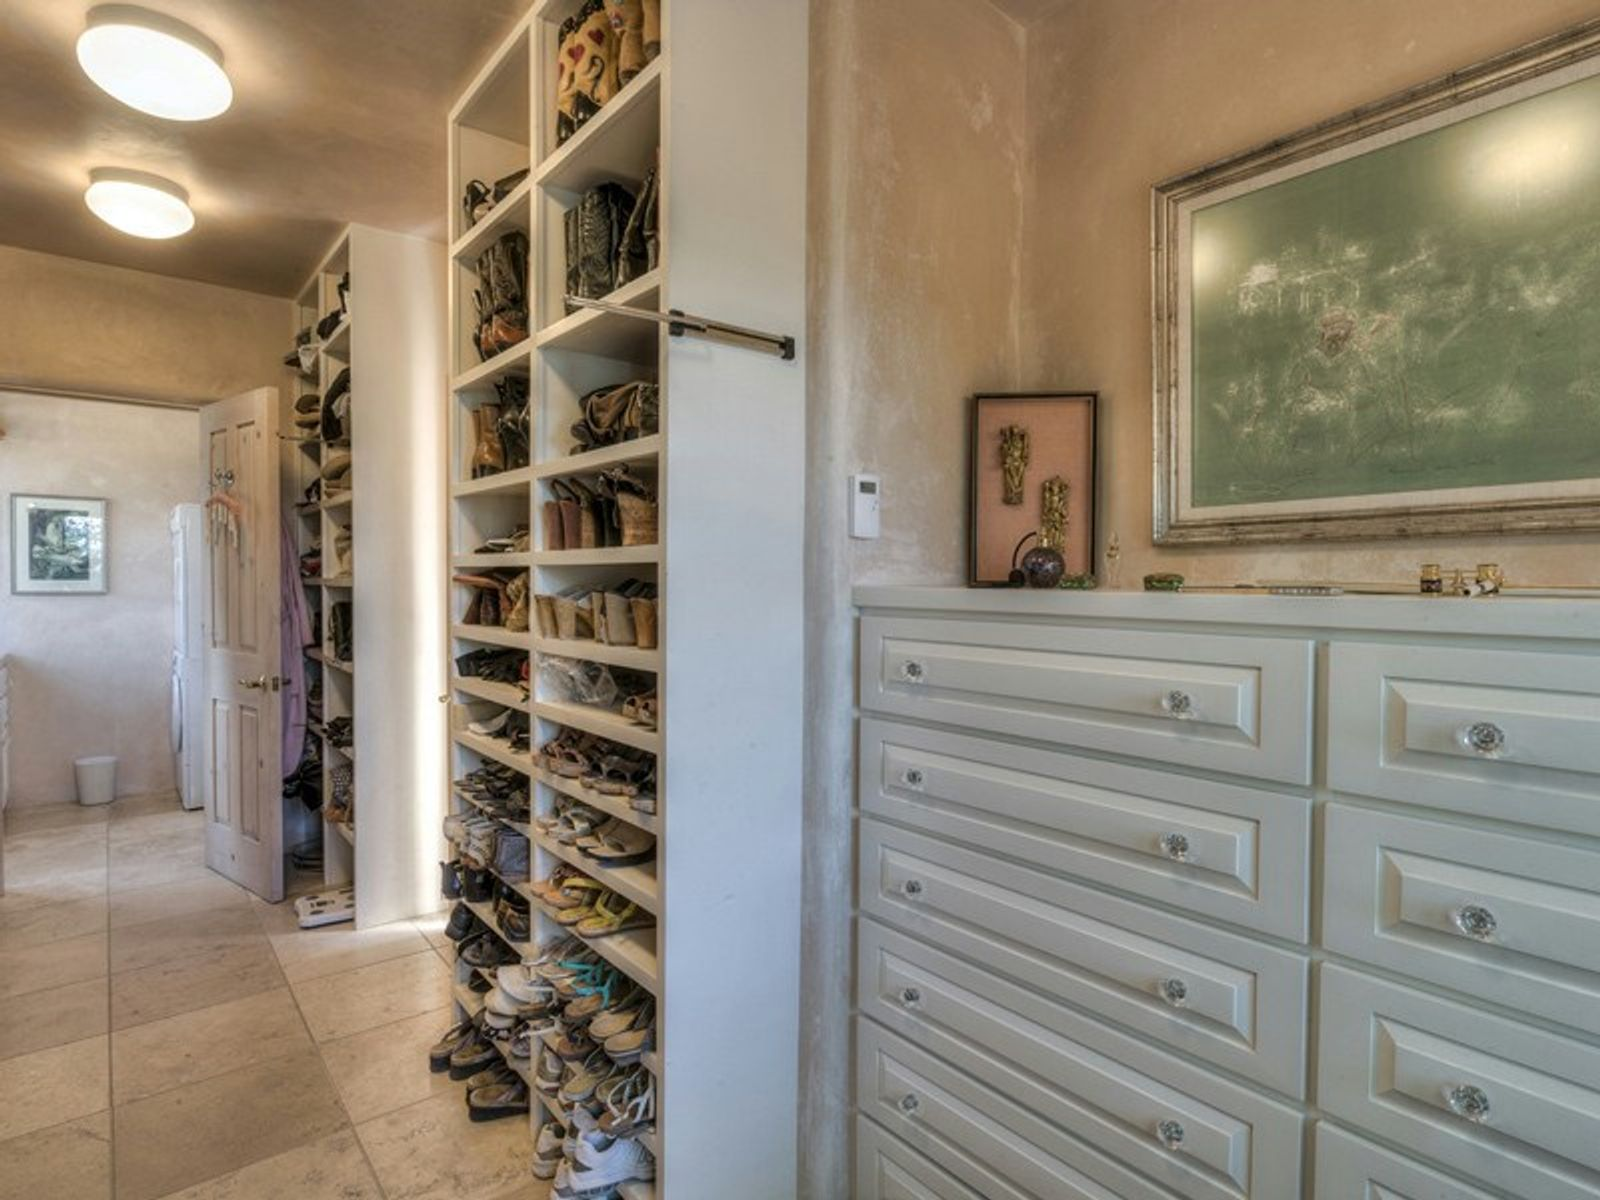 Her Closet with Laundry Room